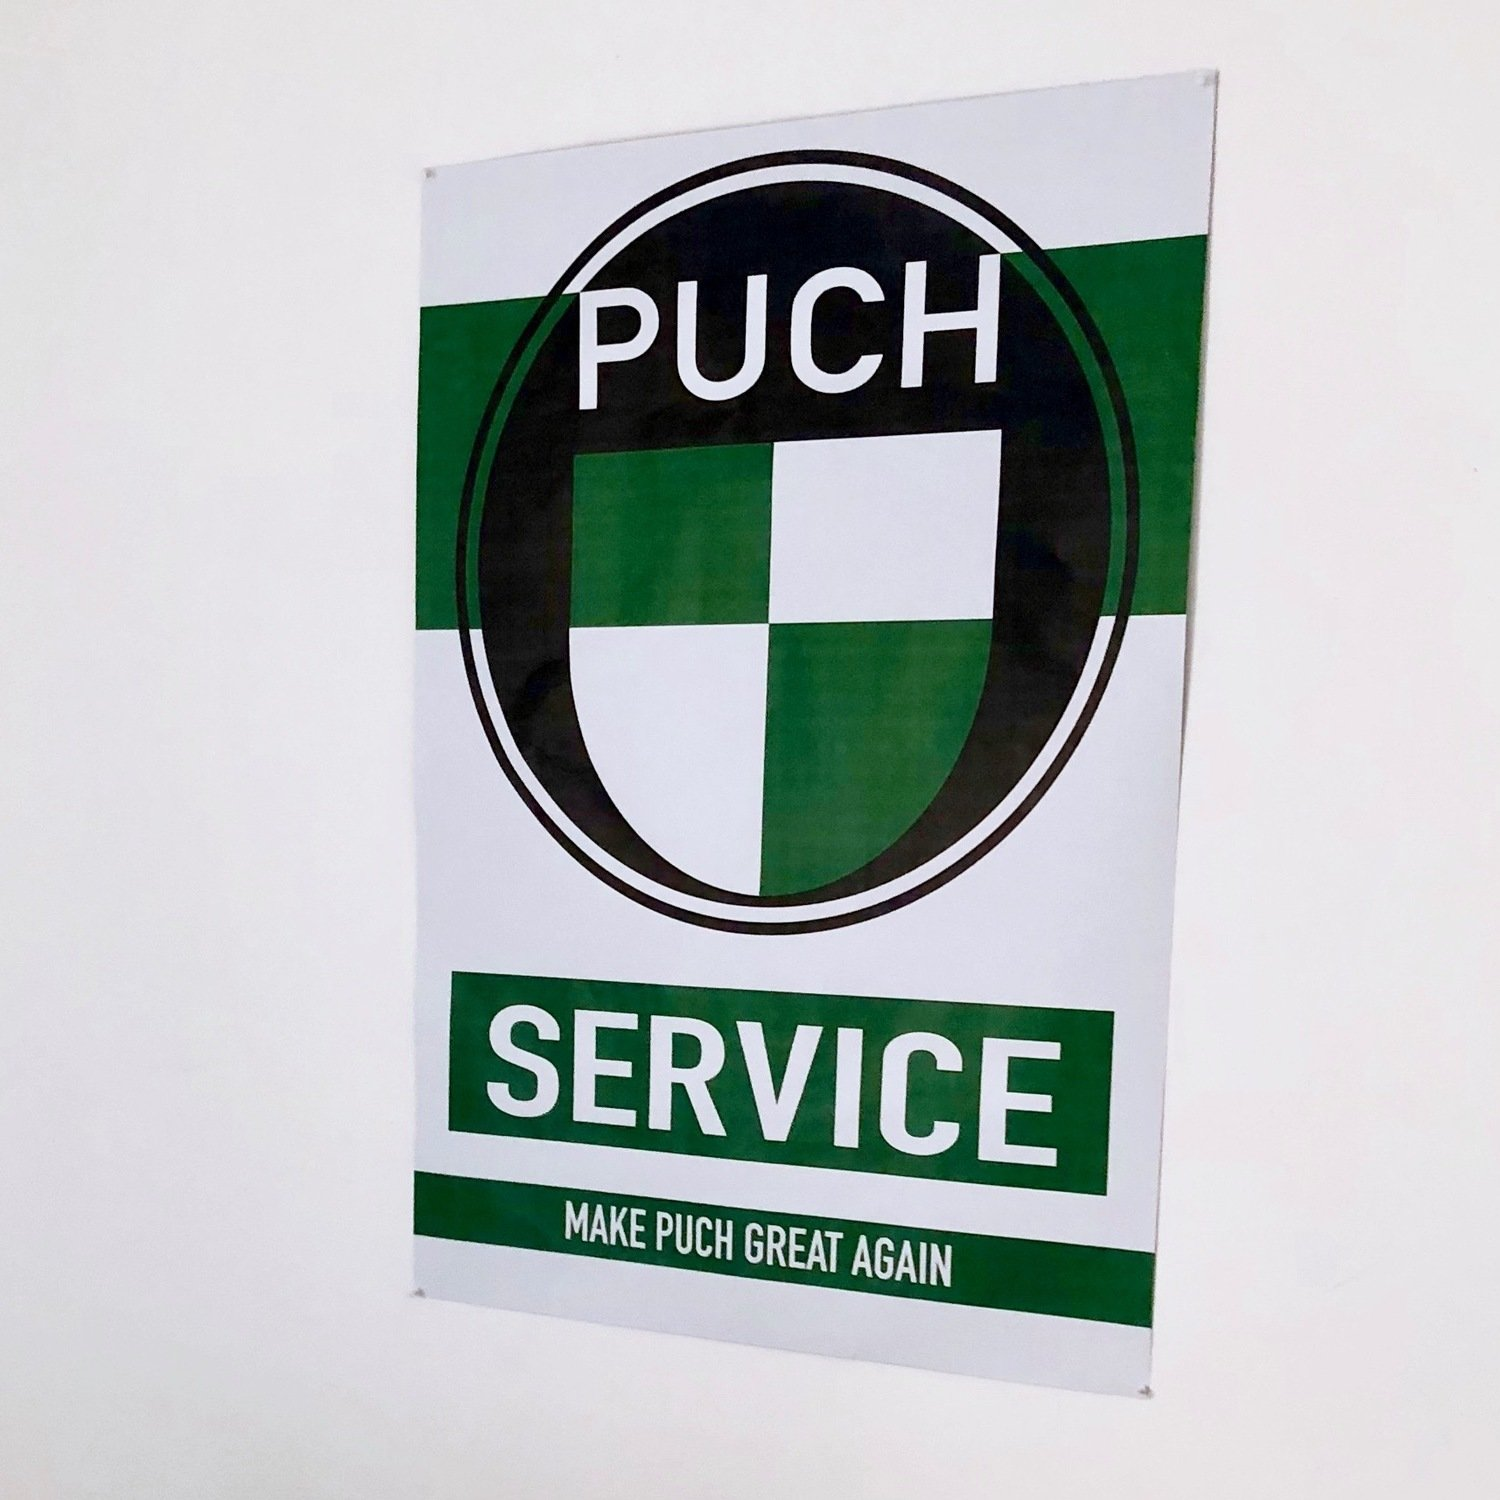 Puch Service Poster | A0 Large Format